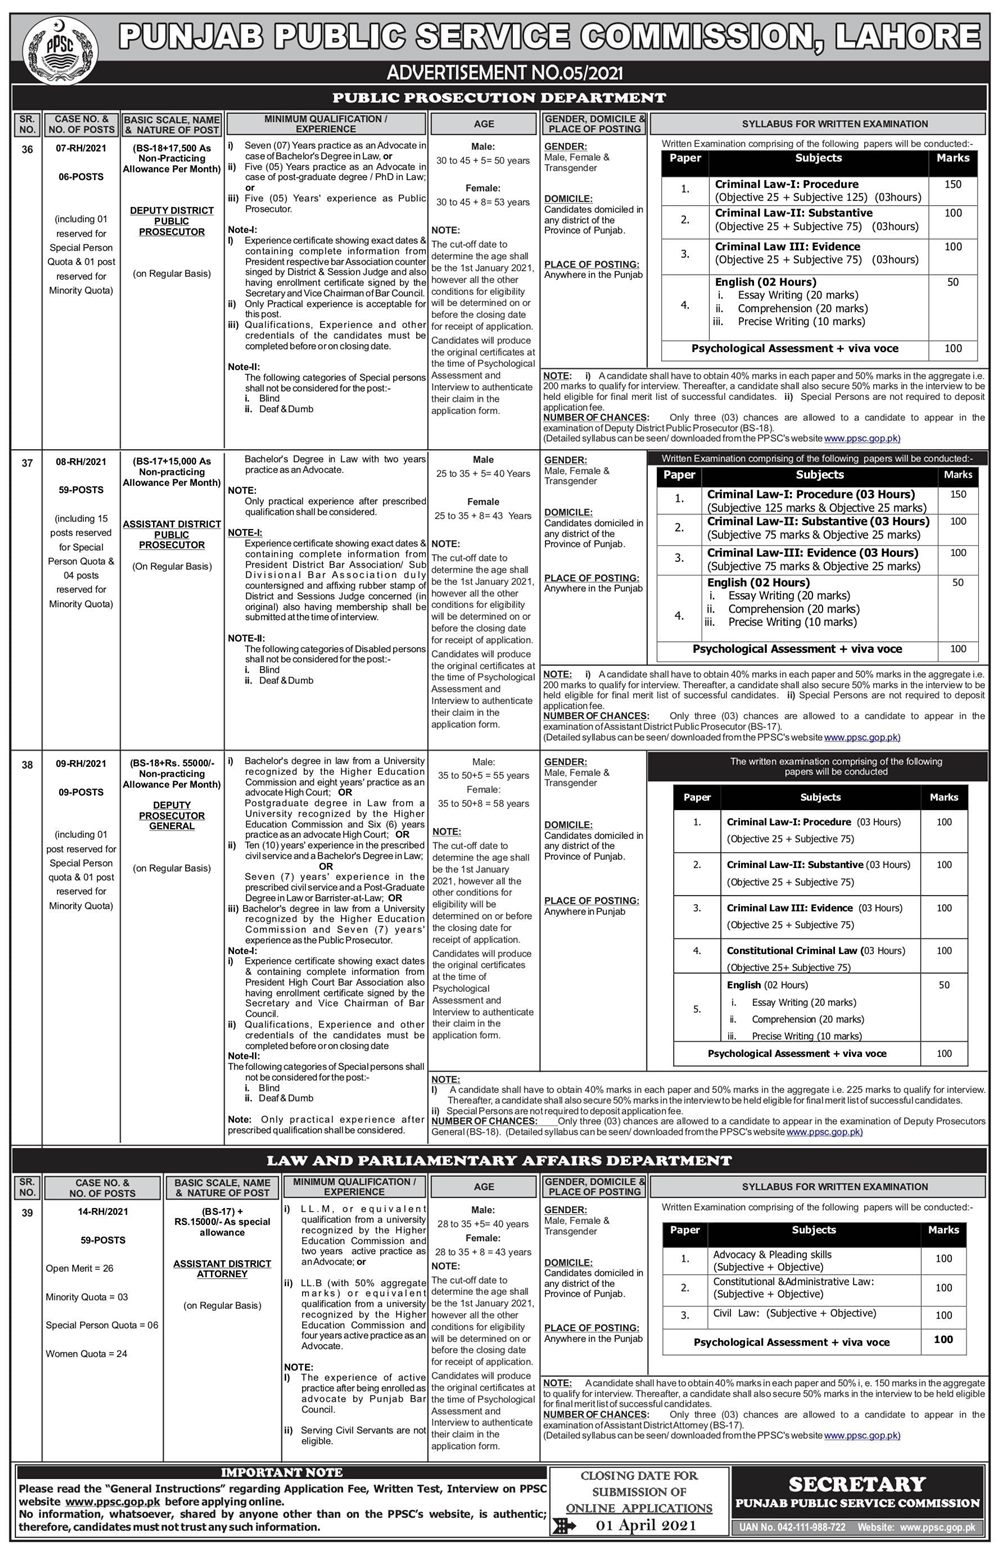 PPSC Law and Parliamentary Affairs Department Jobs 2021